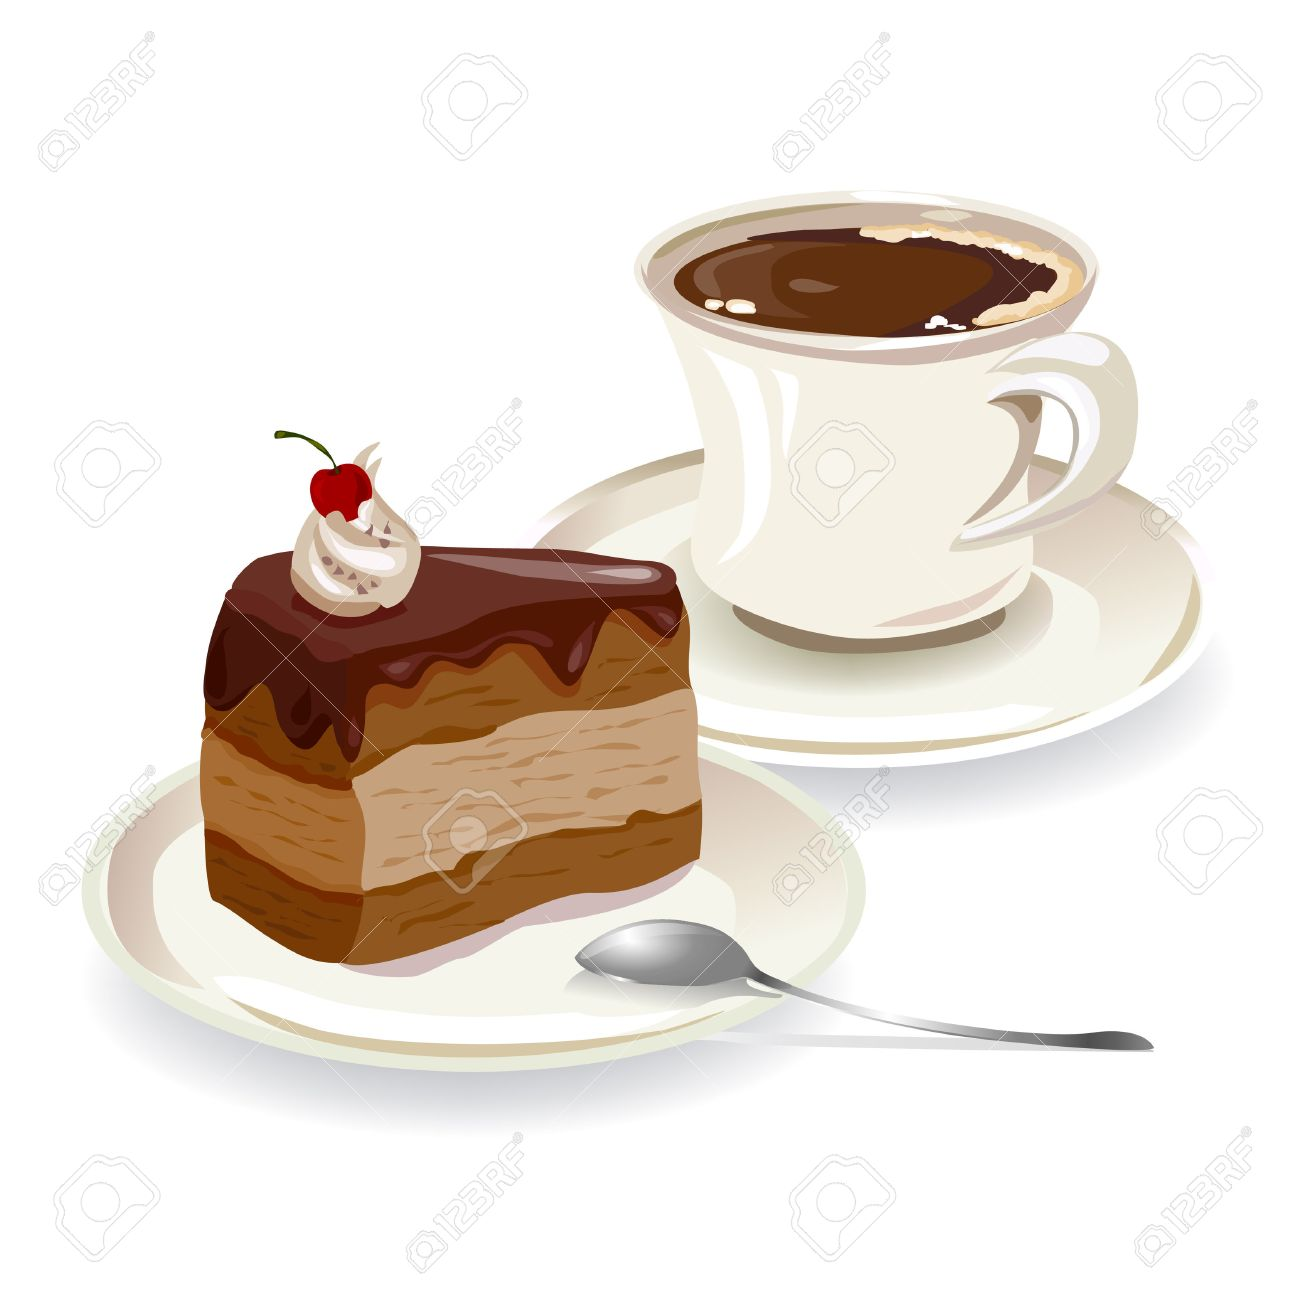 cup of coffee and a piece of cake. Standard-Bild - 29777654